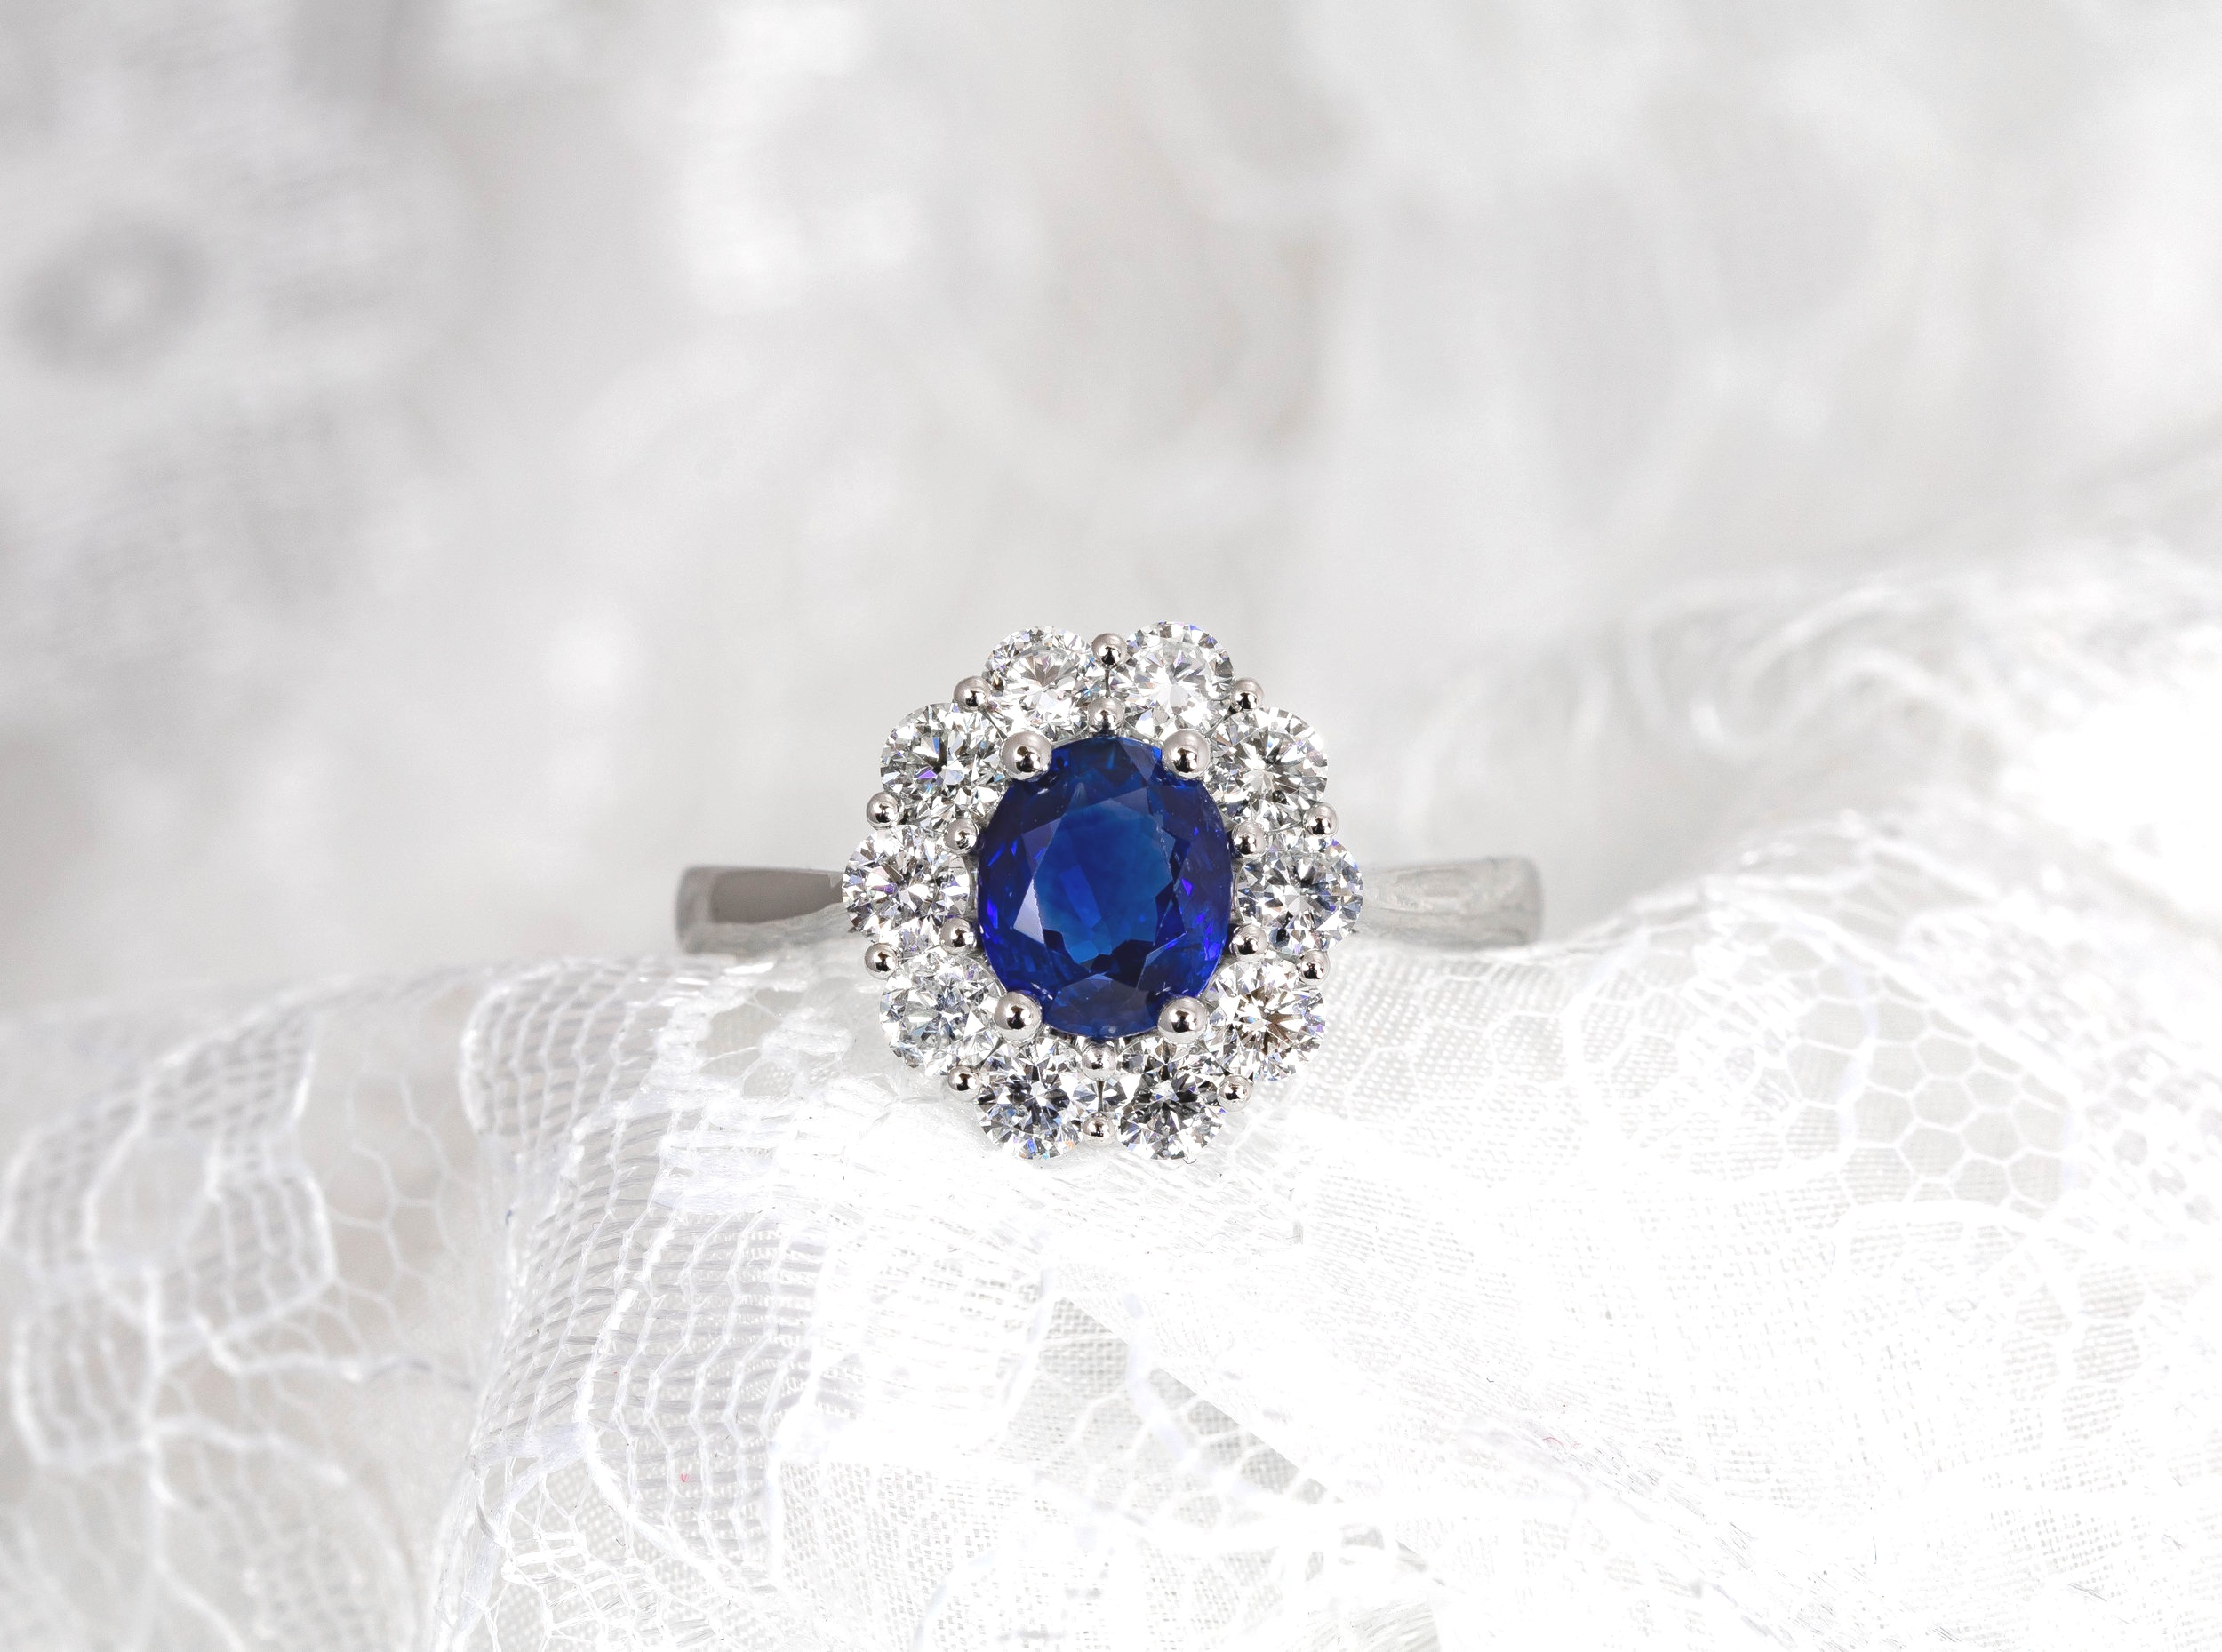 Platinum mounted 1.42ct Sri Lankan sapphire and diamond oval cluster ring. Made in Chichester, England.